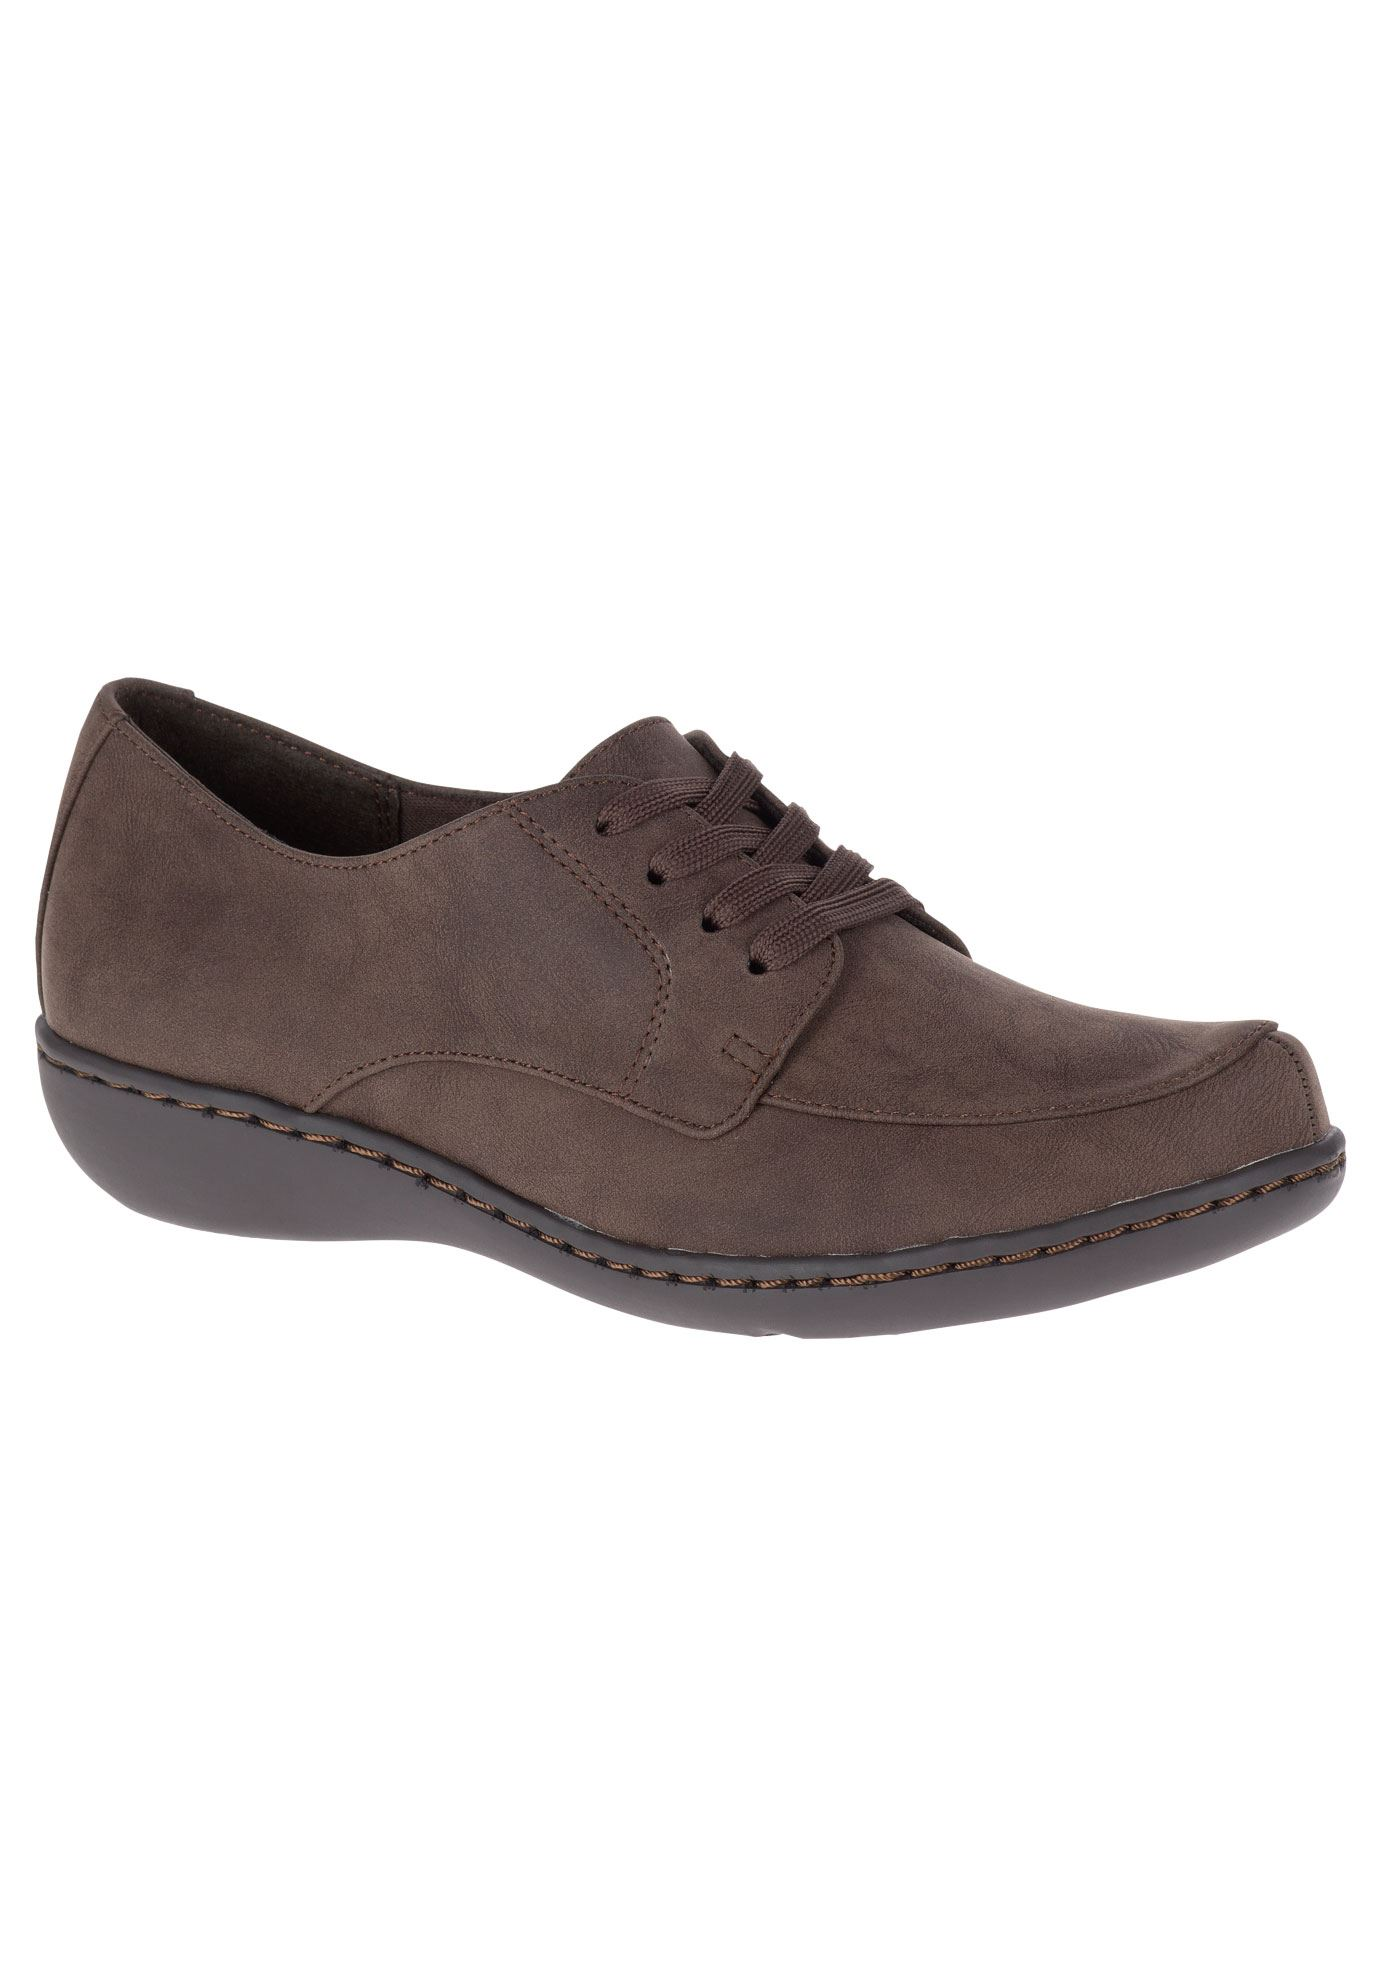 Jazlyn Oxfords by Soft Style, MID BROWN NUBUCK, hi-res